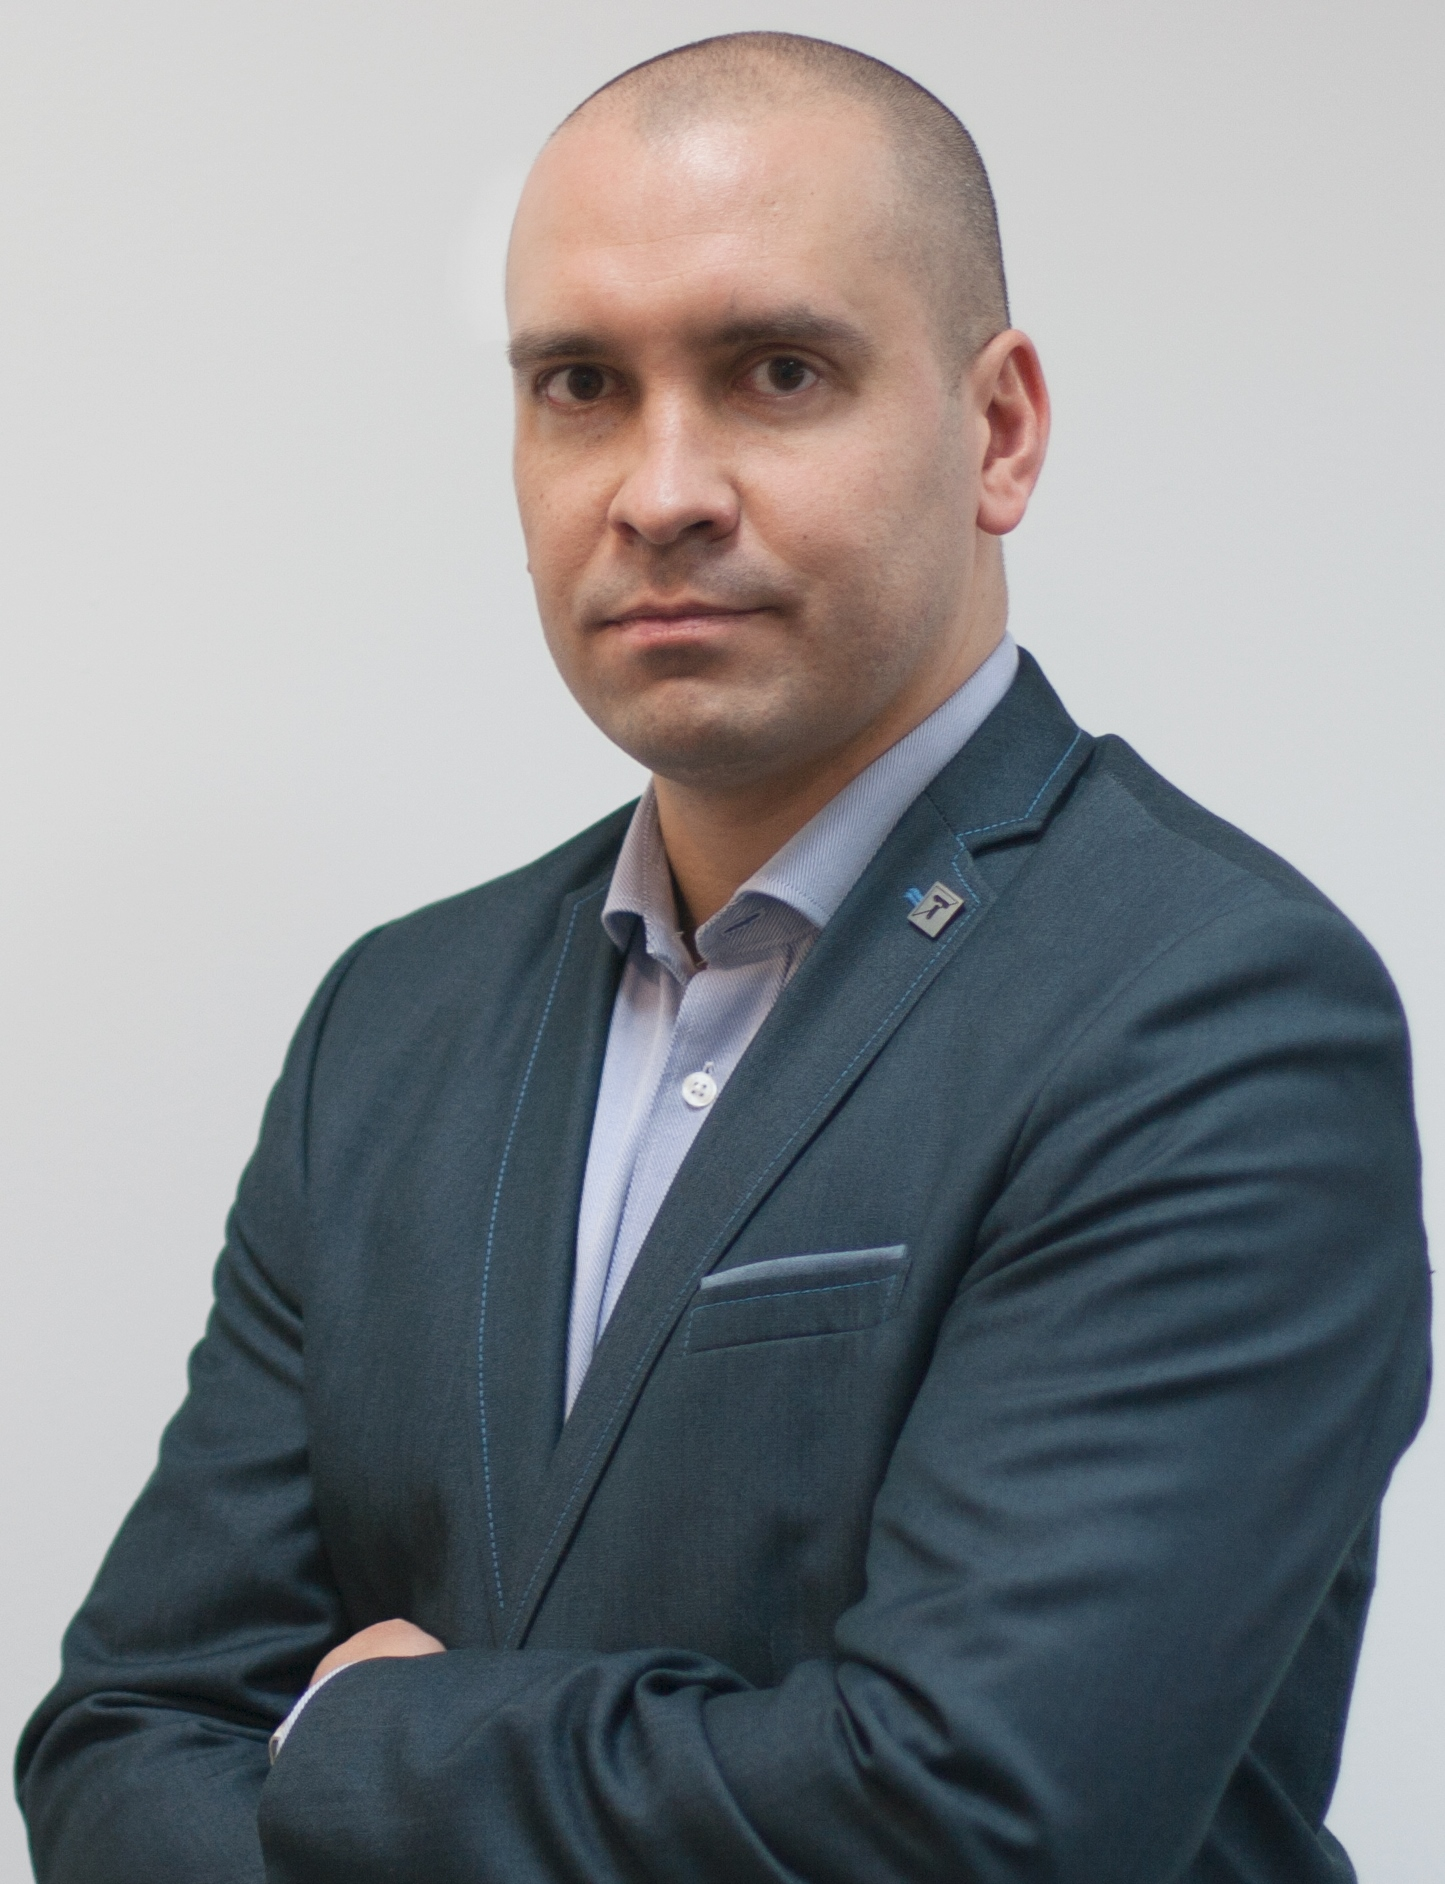 Piotr Nosal - Member of the Management Board